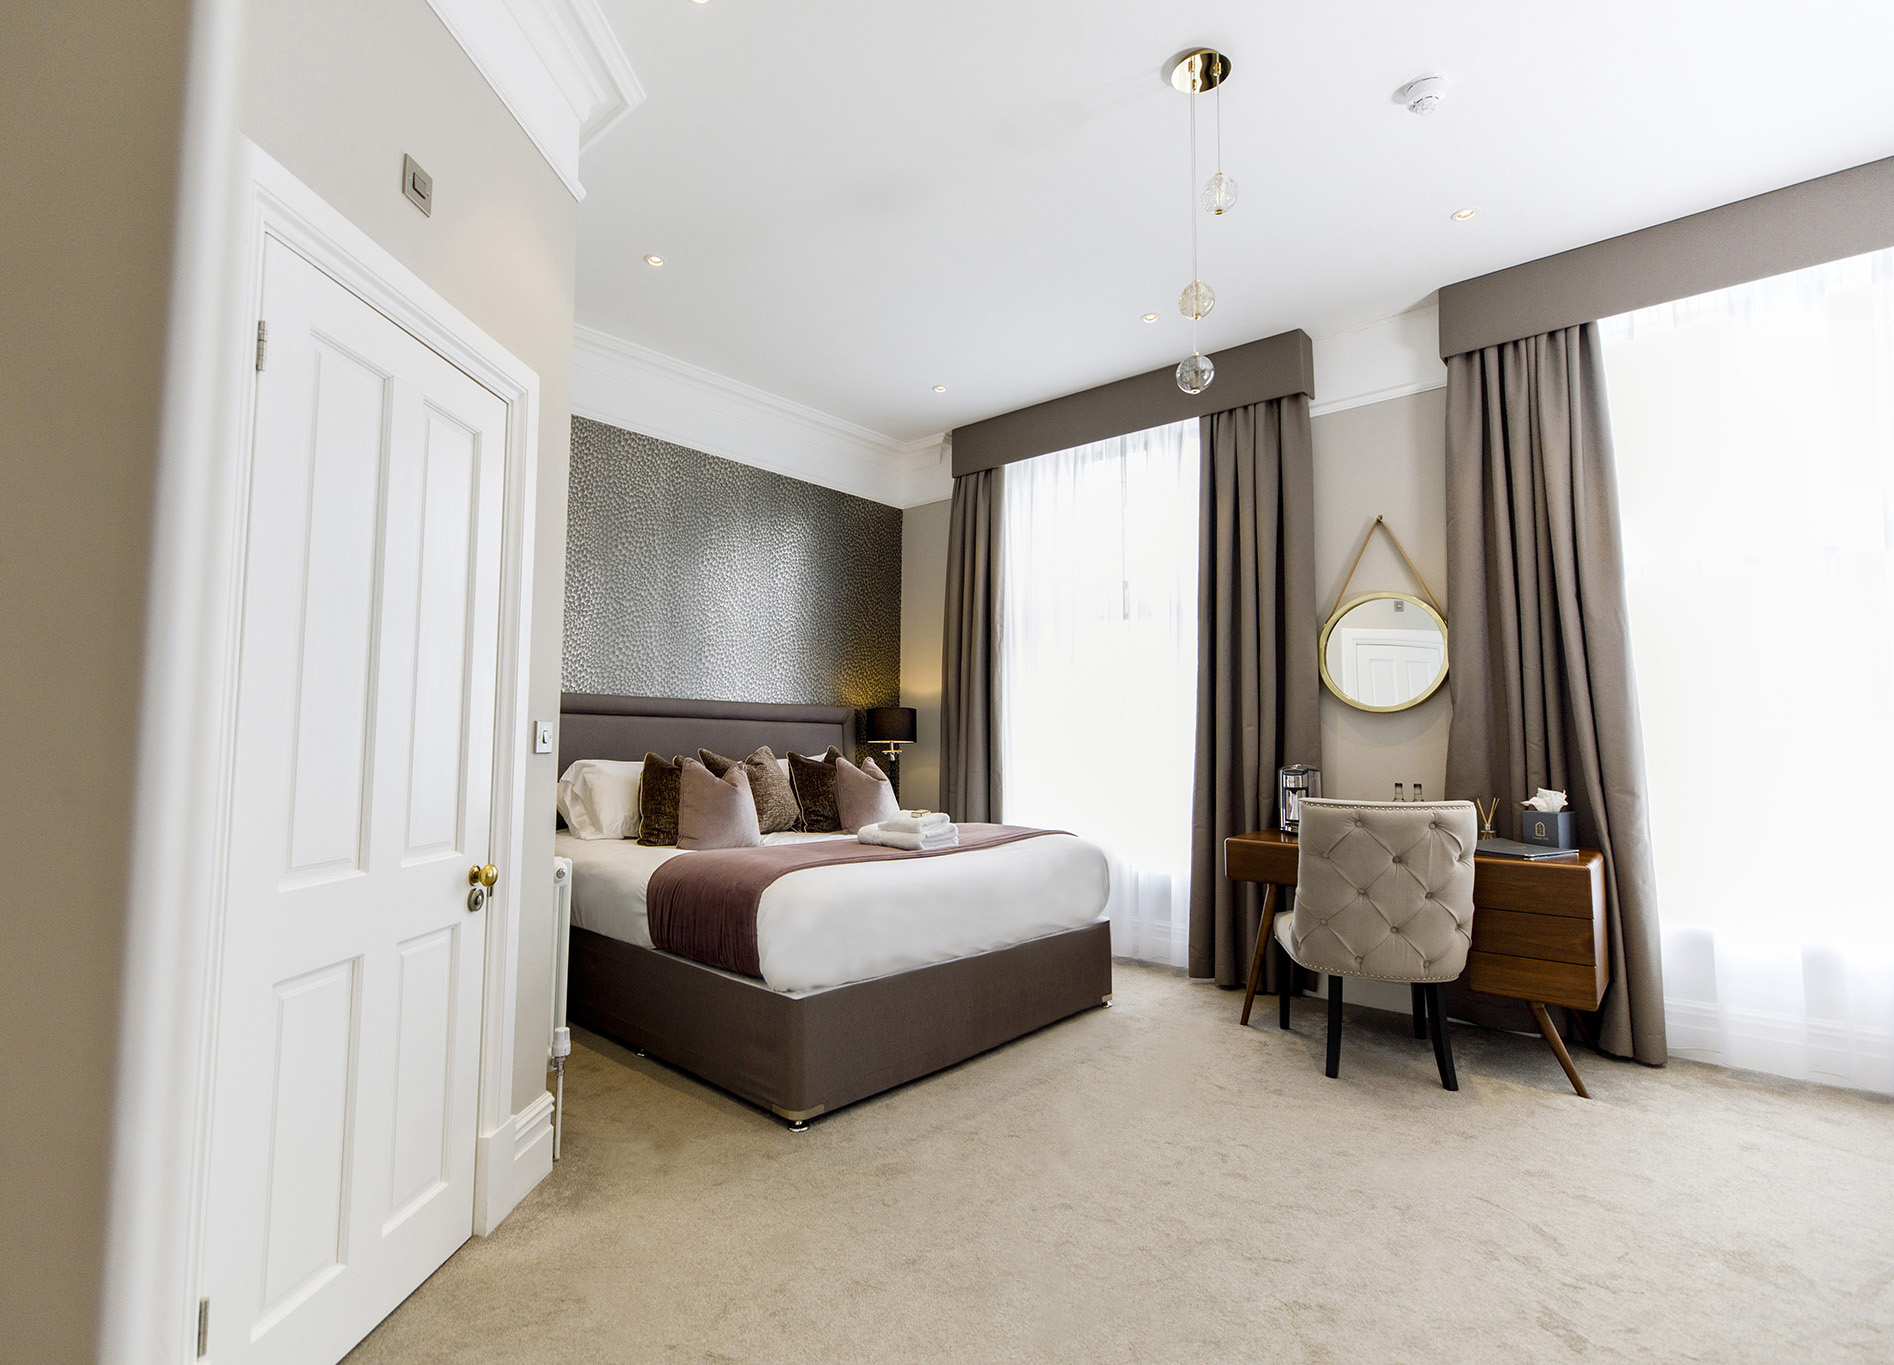 luxury hotel room with purple decor and large windows